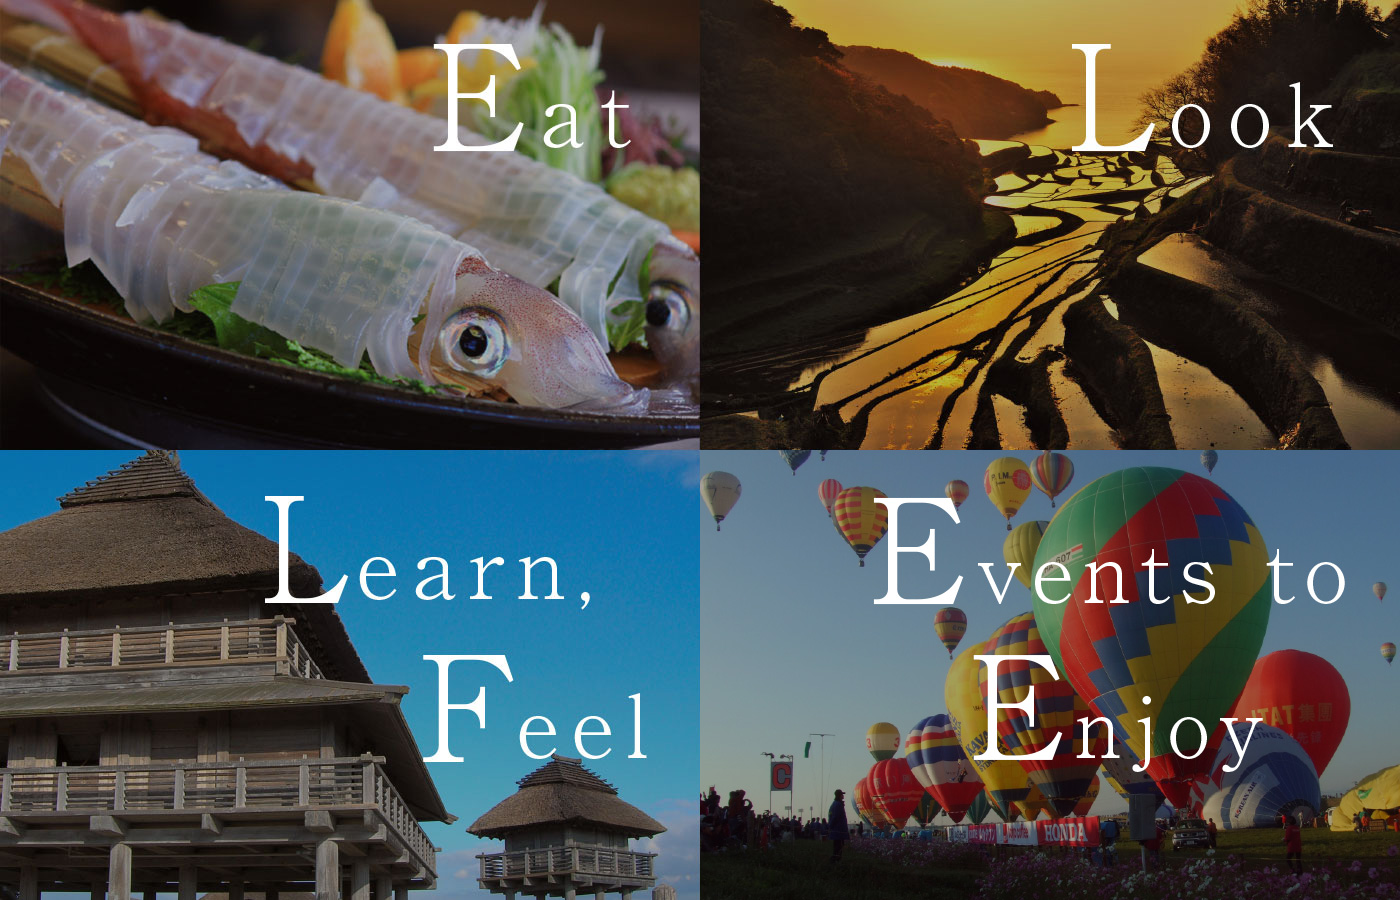 Eat.・Look・Learn, Feel・Events to Enjoy